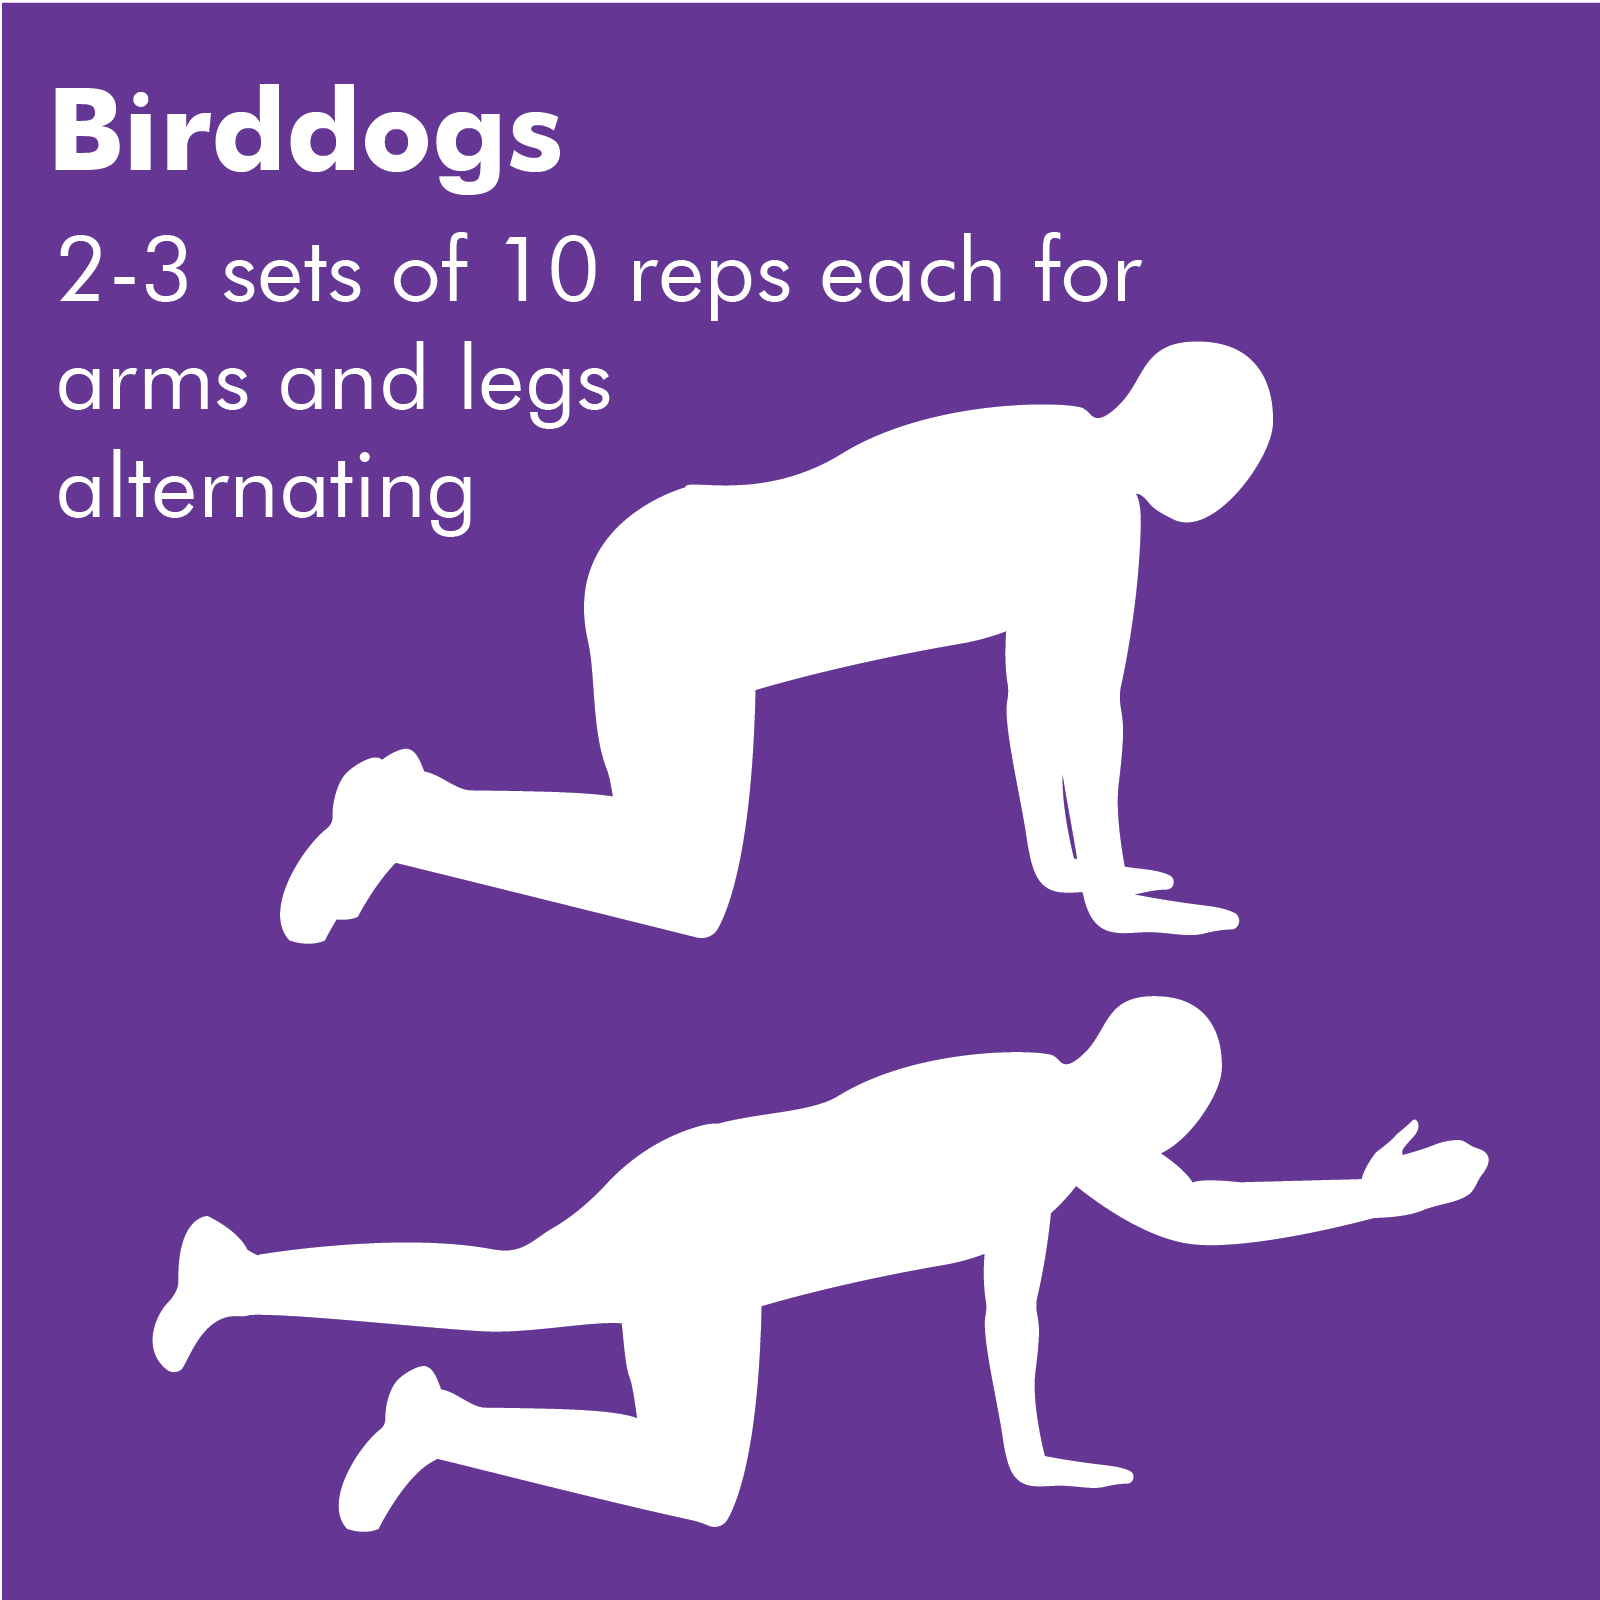 Birddogs is a great exercise for your arms, legs and core. You start on all fours and reach out opposite arm and leg as far as you can, holding for a few seconds, then switching to the other arm and leg.